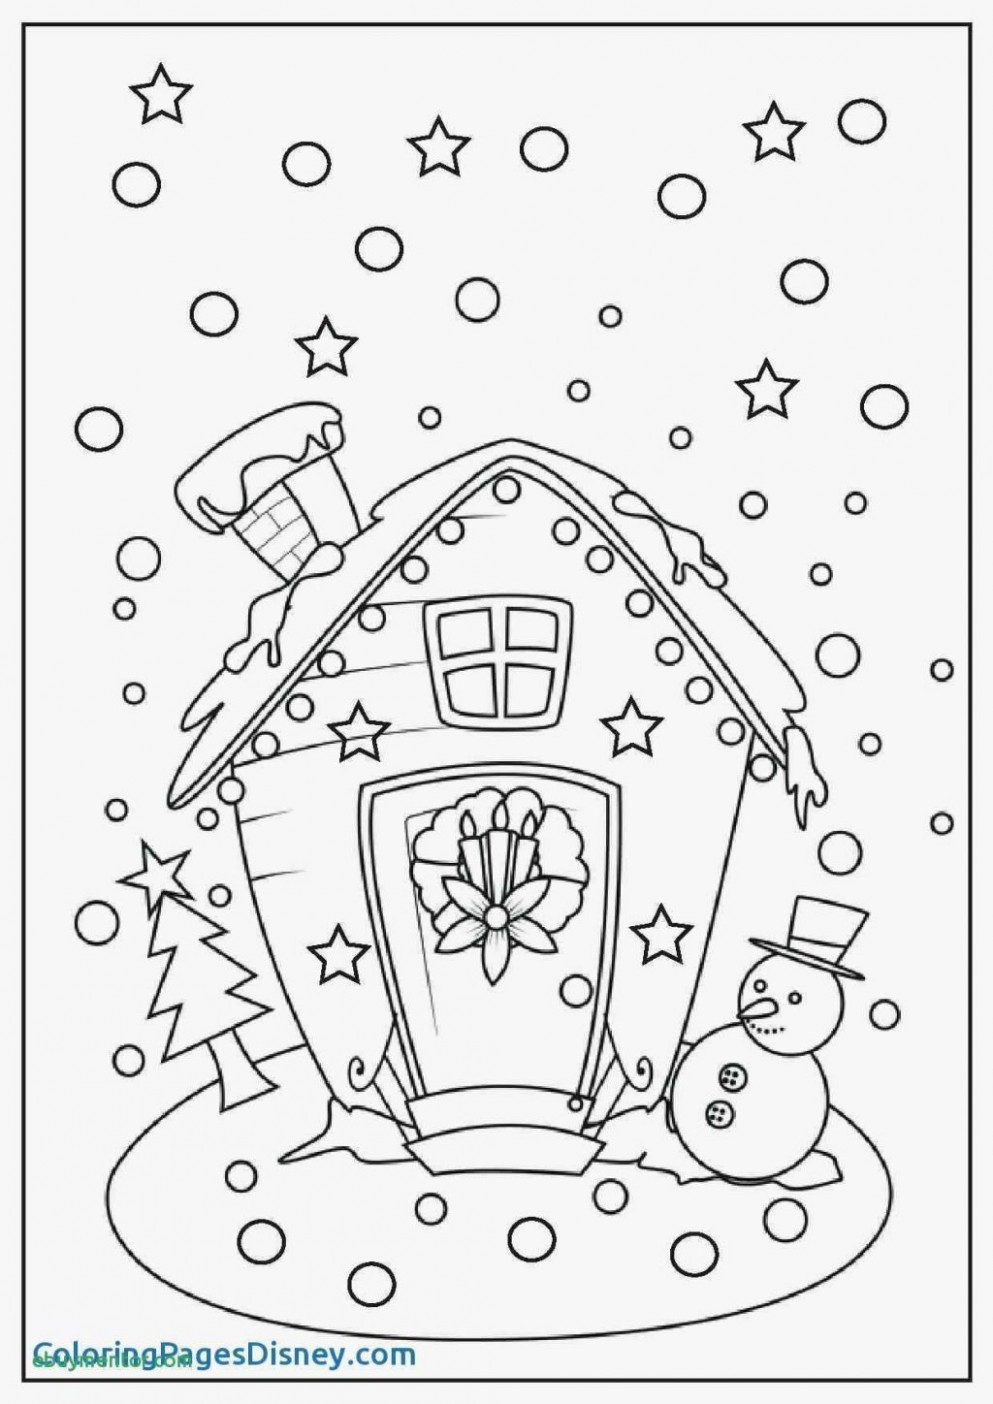 coloring page ~ Motivational Coloring Pages Fresh Best Inspirational ...